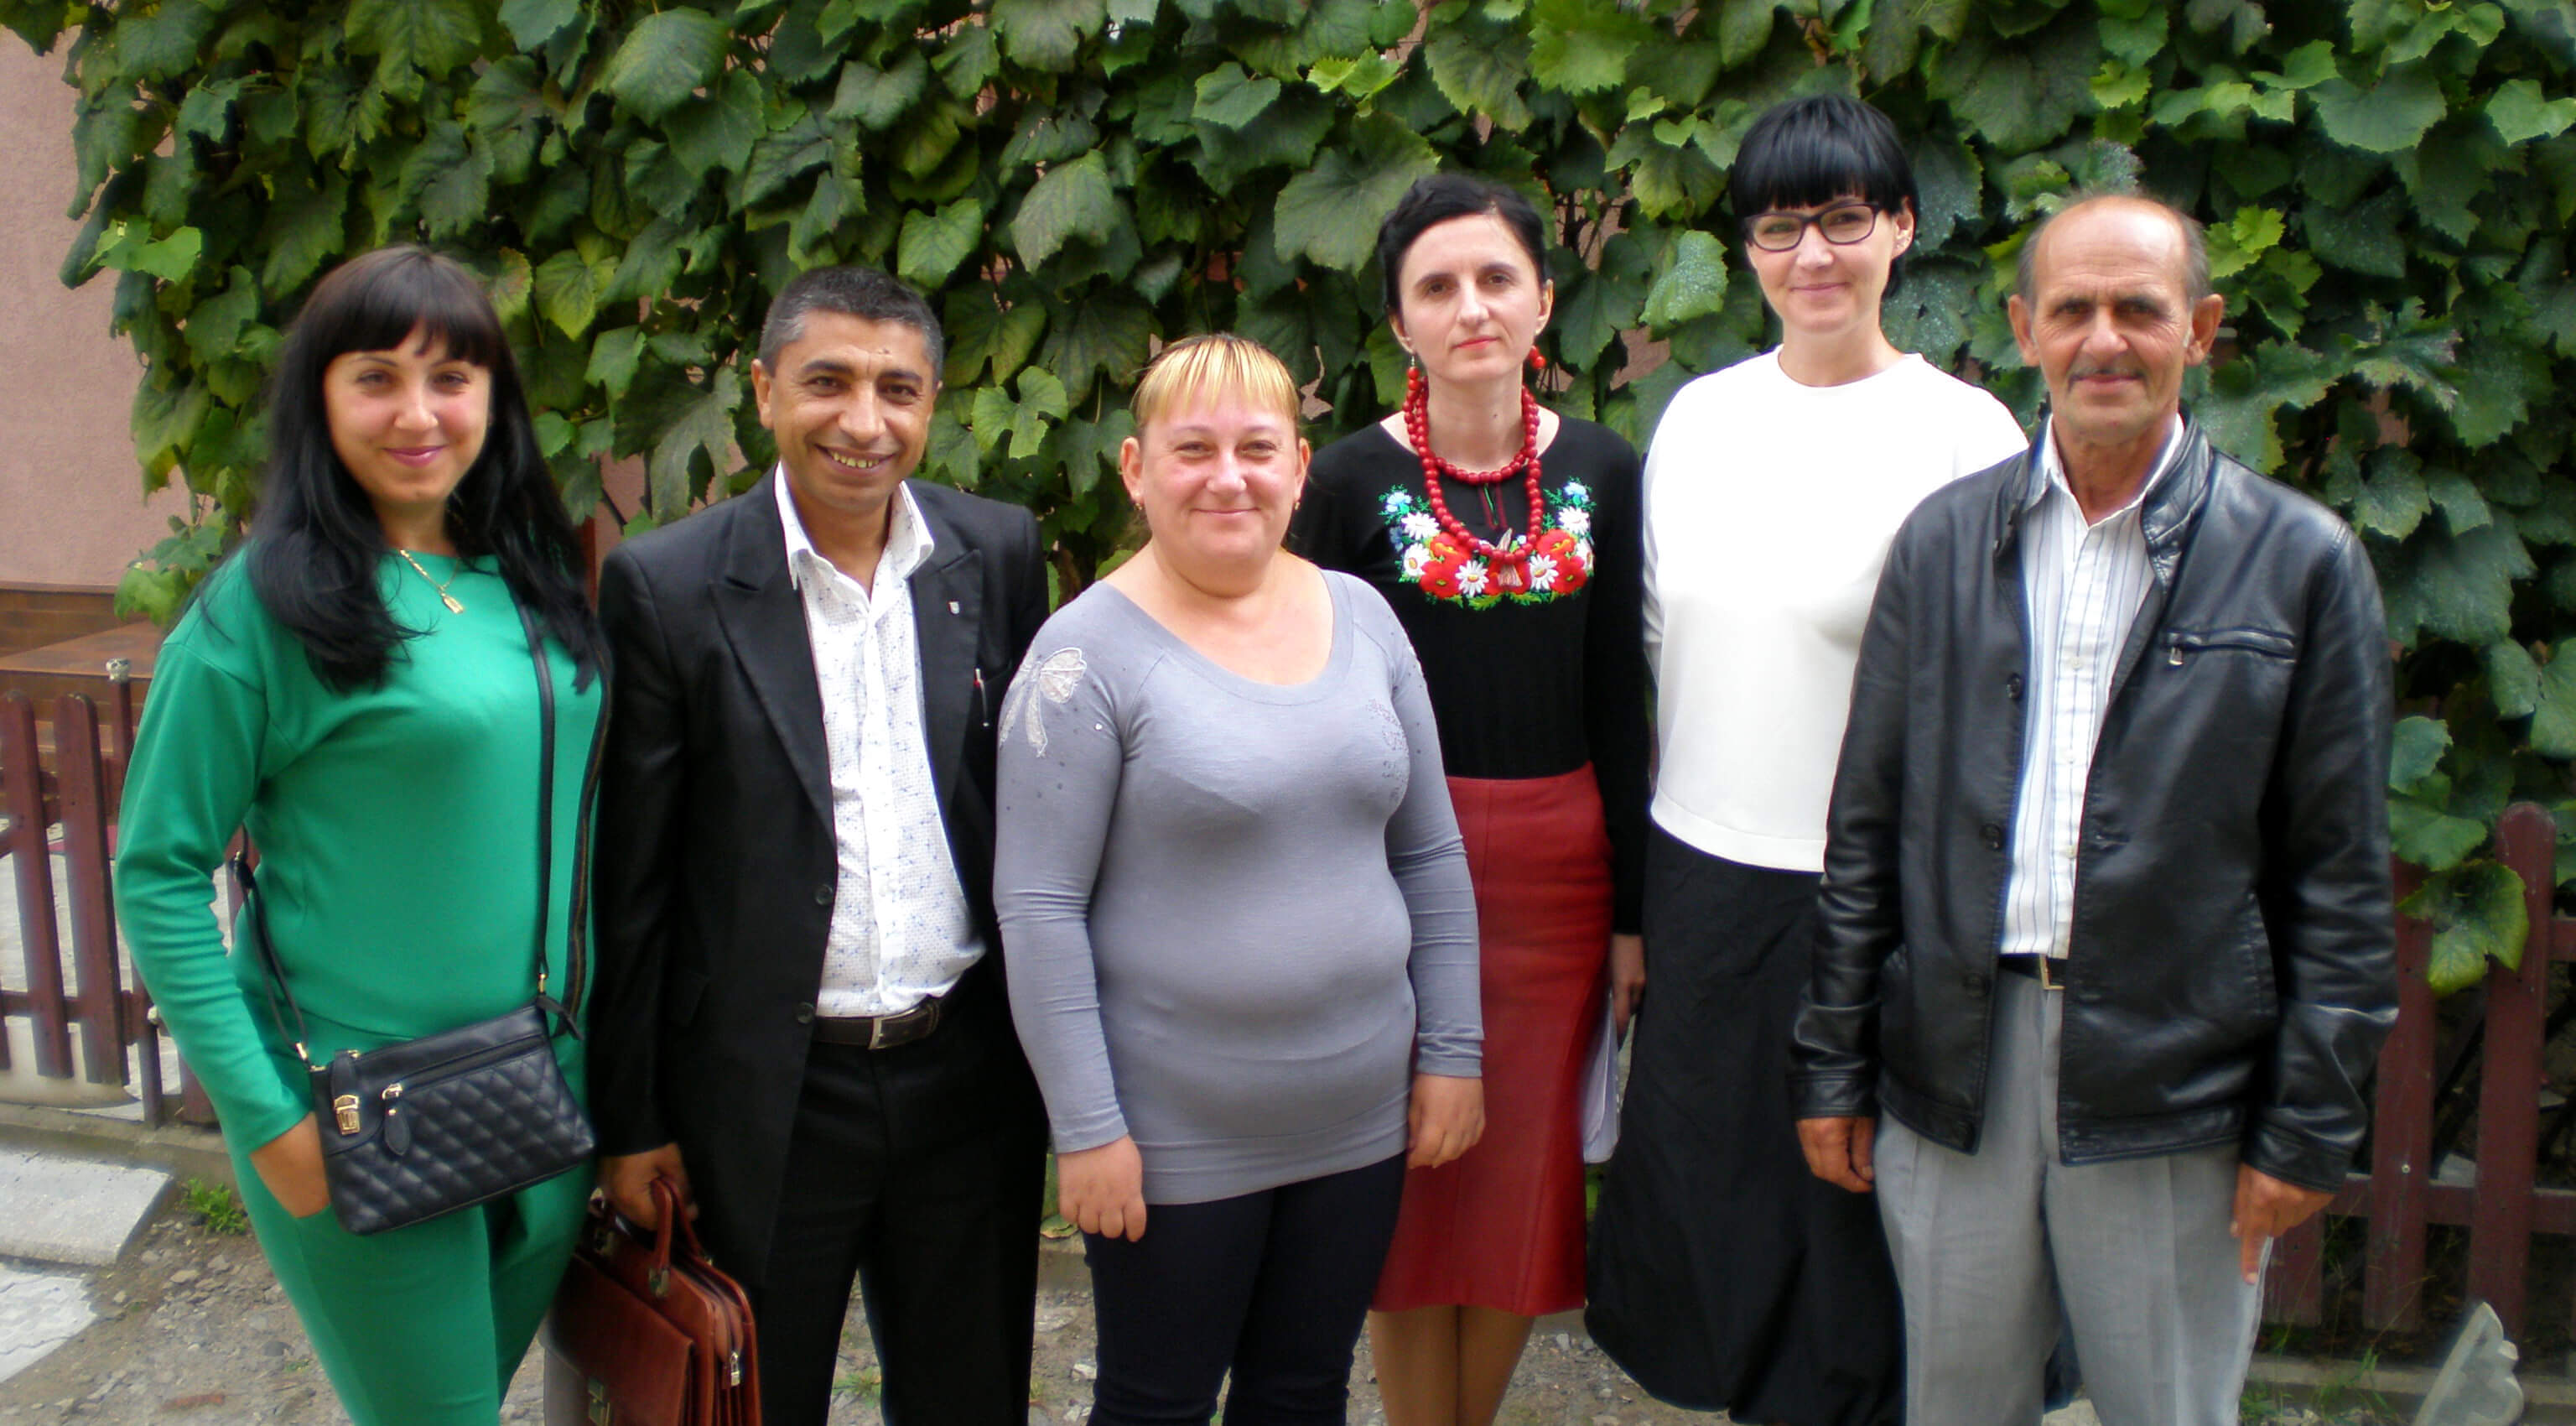 EMPR meets leaders of Mukacheve Roma community and human rights defenders: /from left to right/ Renata Balog, Andriy Gorvat, Georgina Pfeifer, Iryna Lysnychka, Natalia Kozyr, Dezyderiy Kondi. EMPR photo